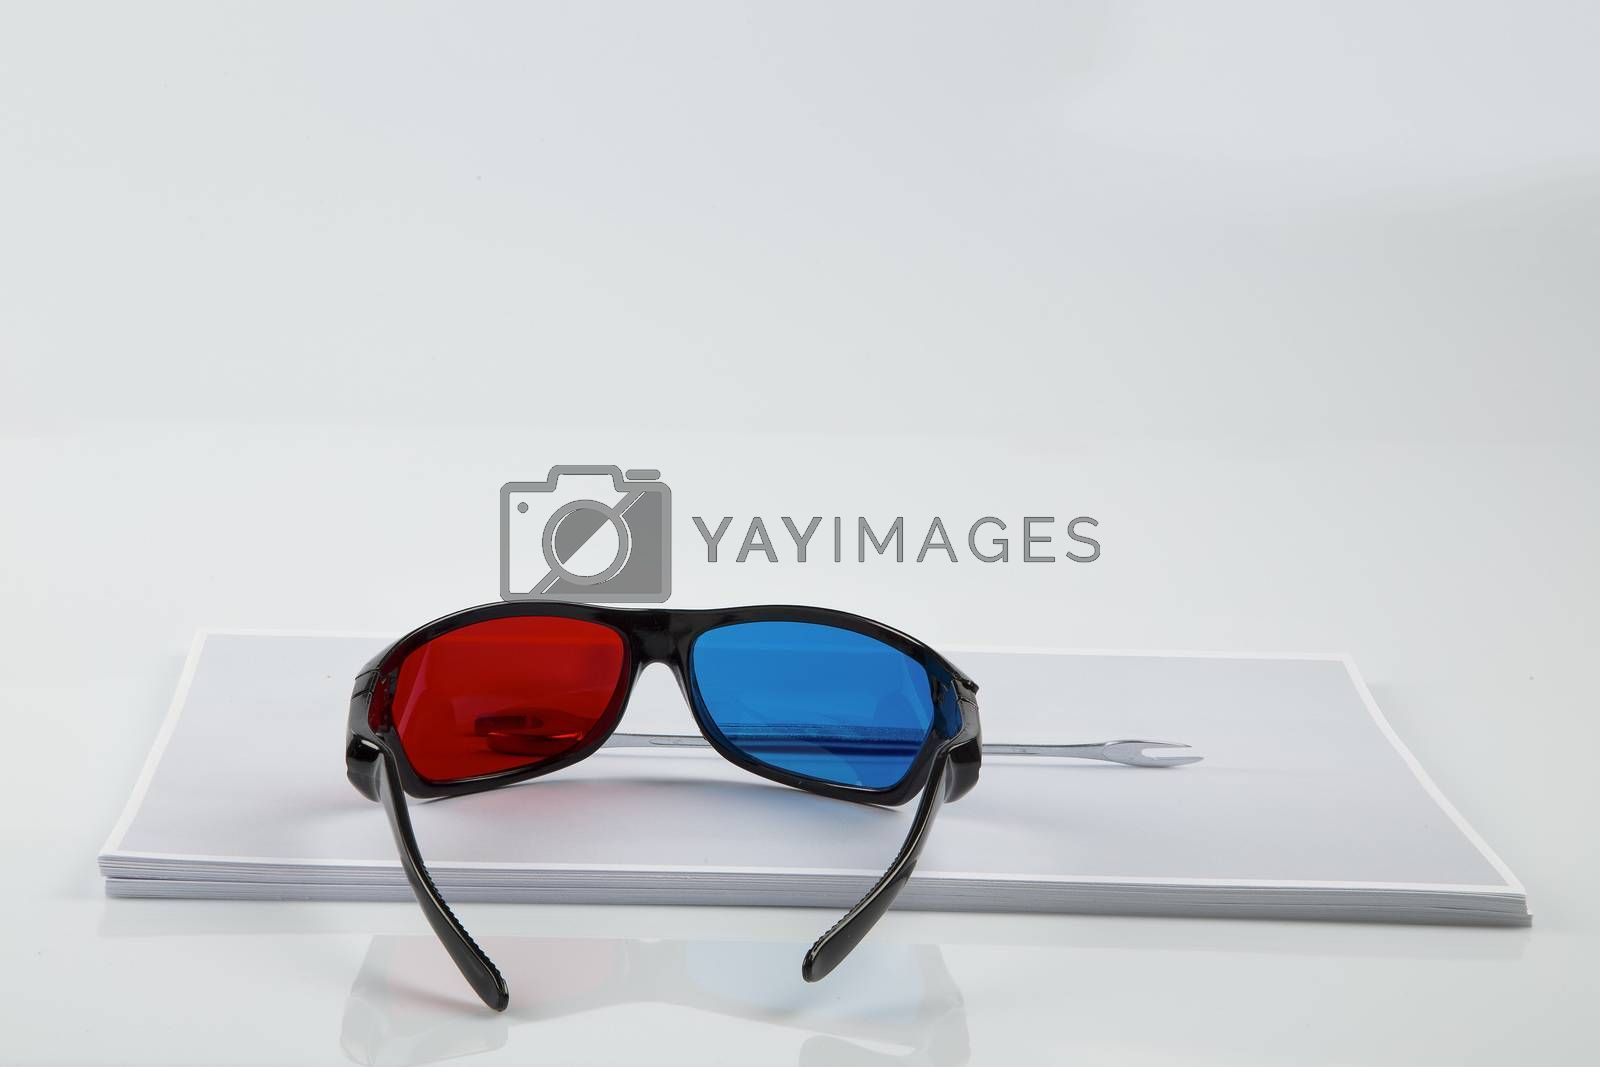 3D Print: black 3D anaglyphic Red Blue glasses and paper printed wrench by paocasa